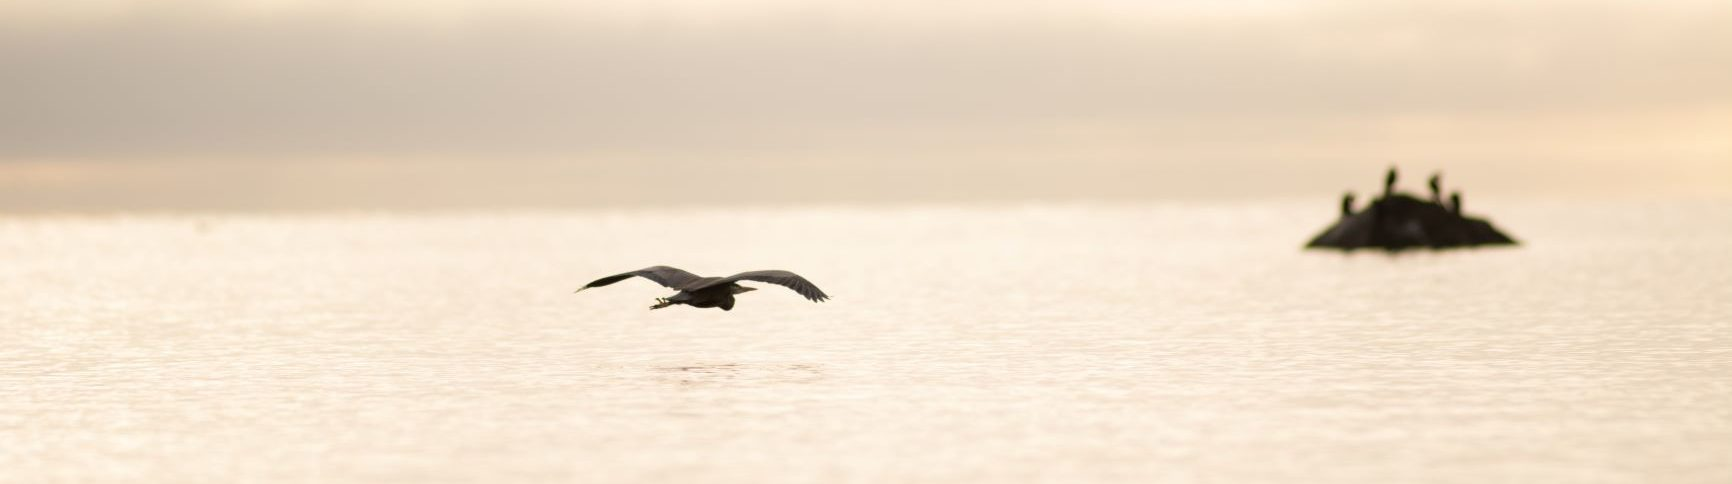 Blue Heron flying low over water